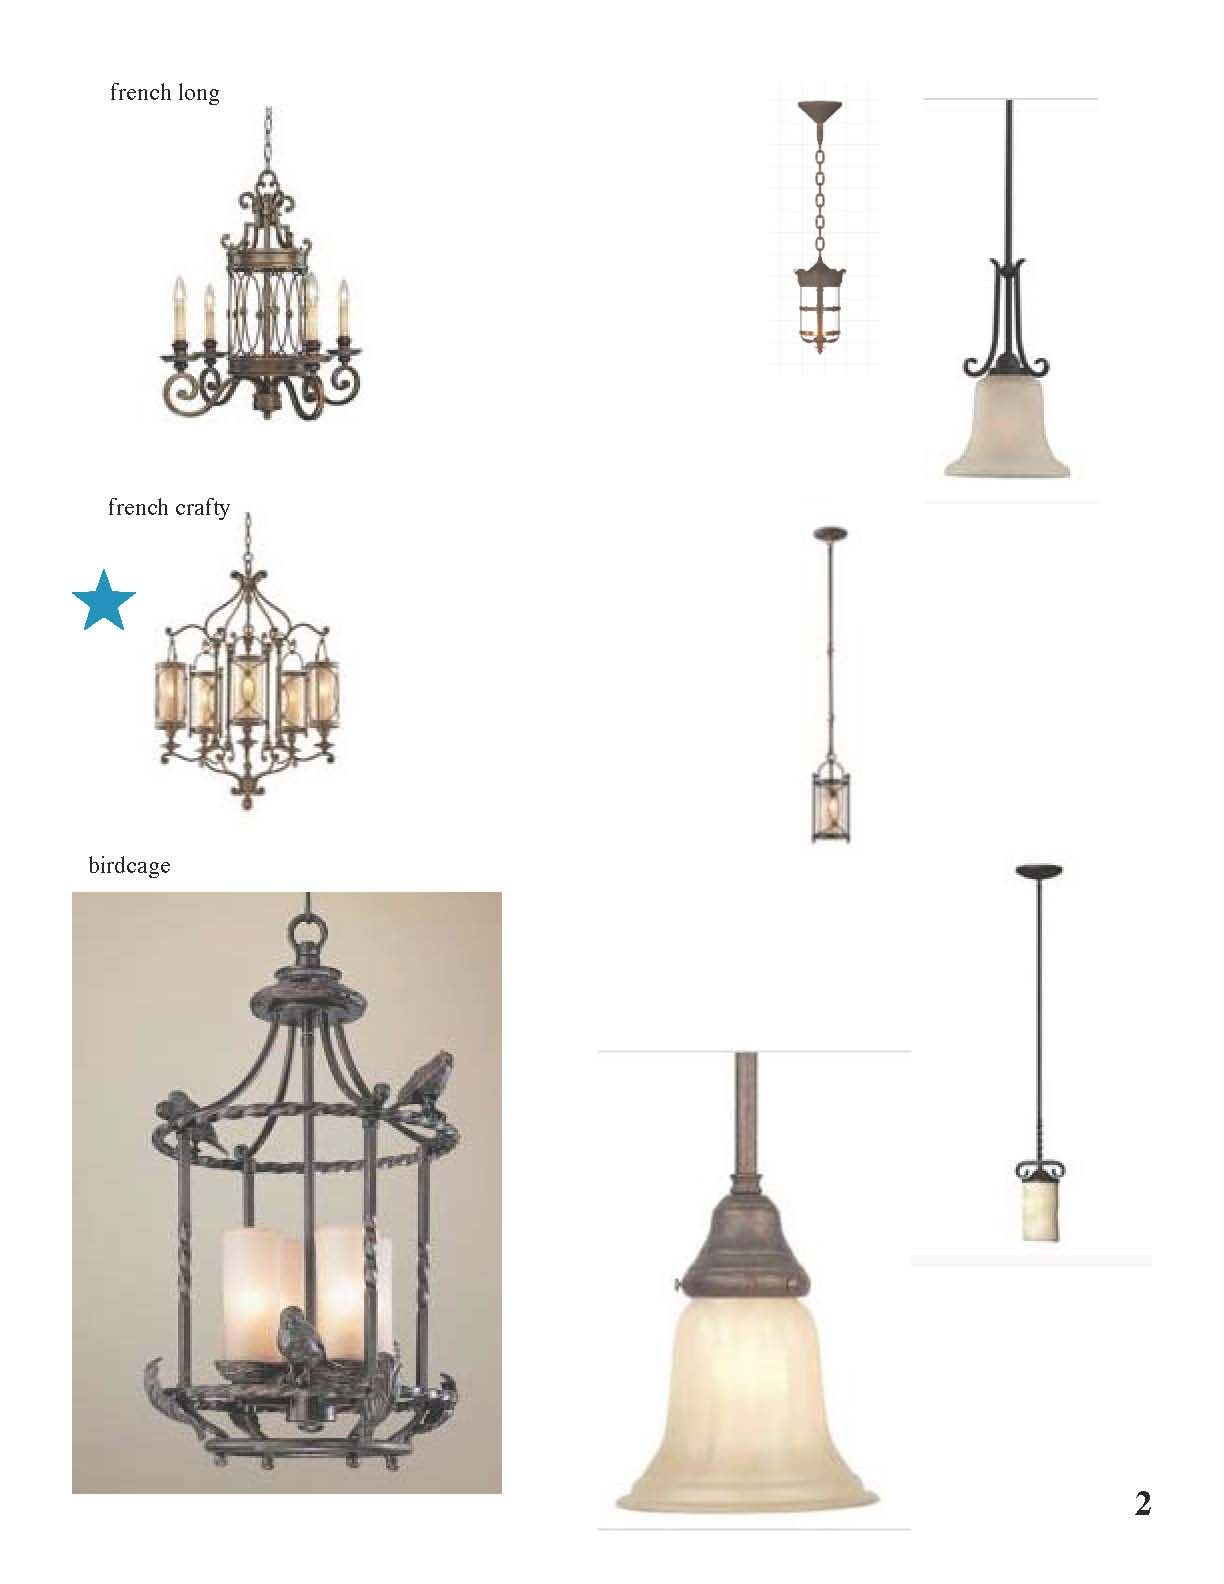 French Country Lighting Selects 2 French Country Kitchen Remodel